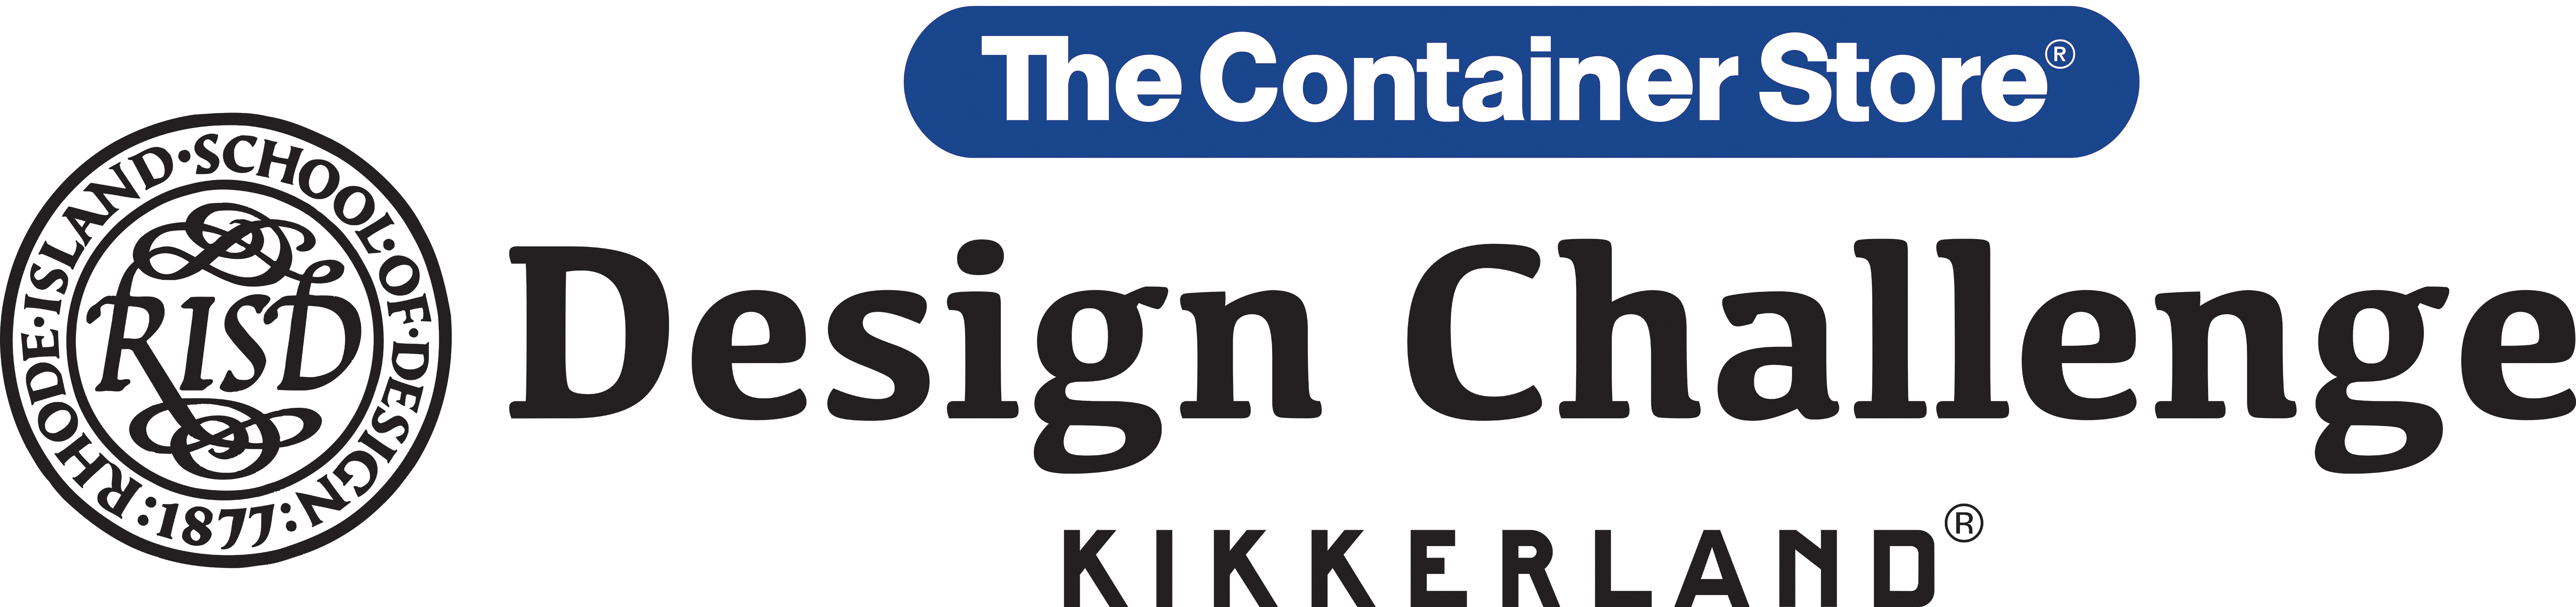 Kikkerland And The Container Store Launch Home Design Challenge